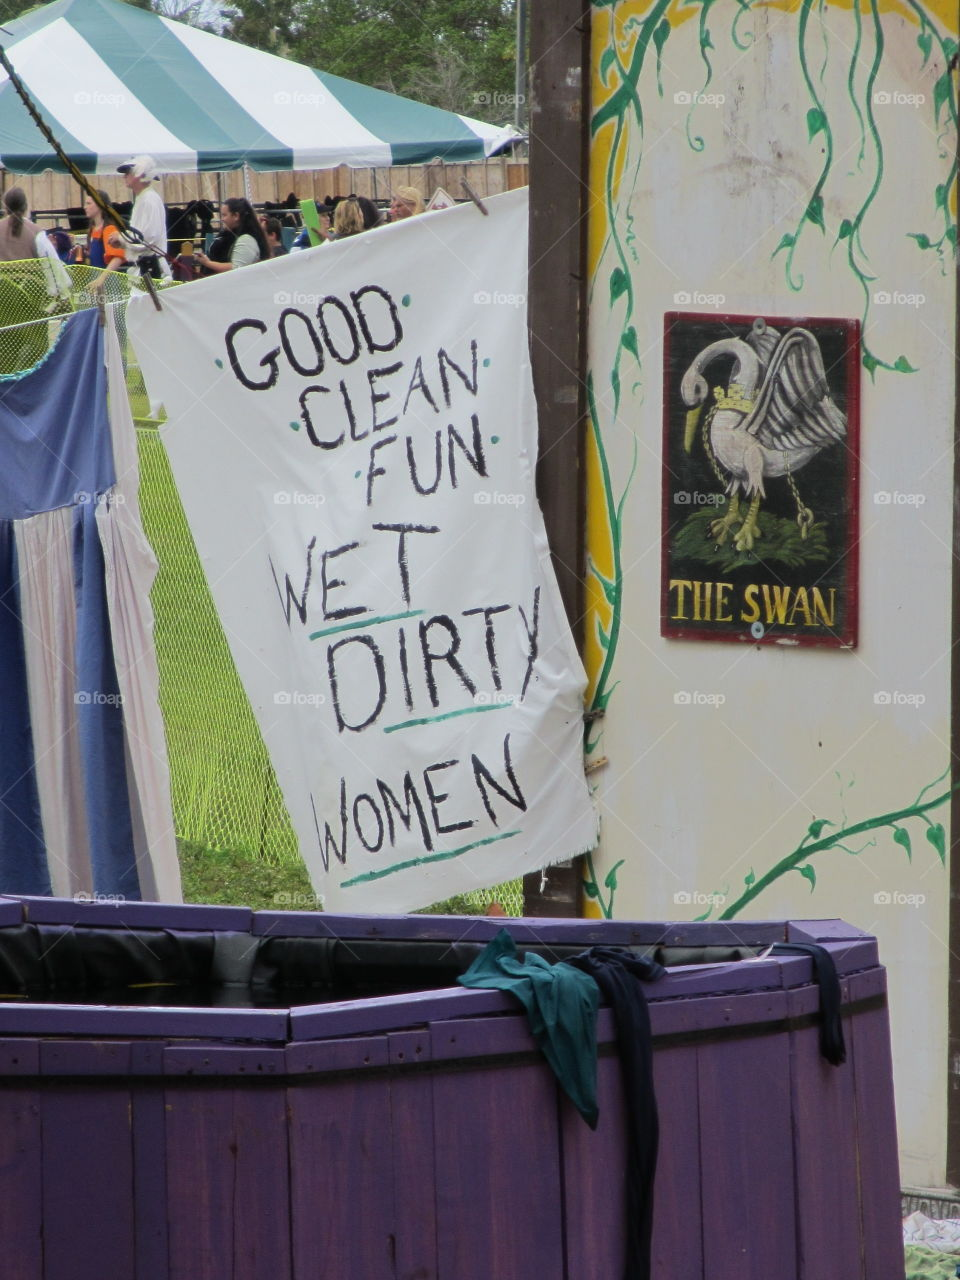 Good clean fun with wet dirty women sign at Renaissance Festival